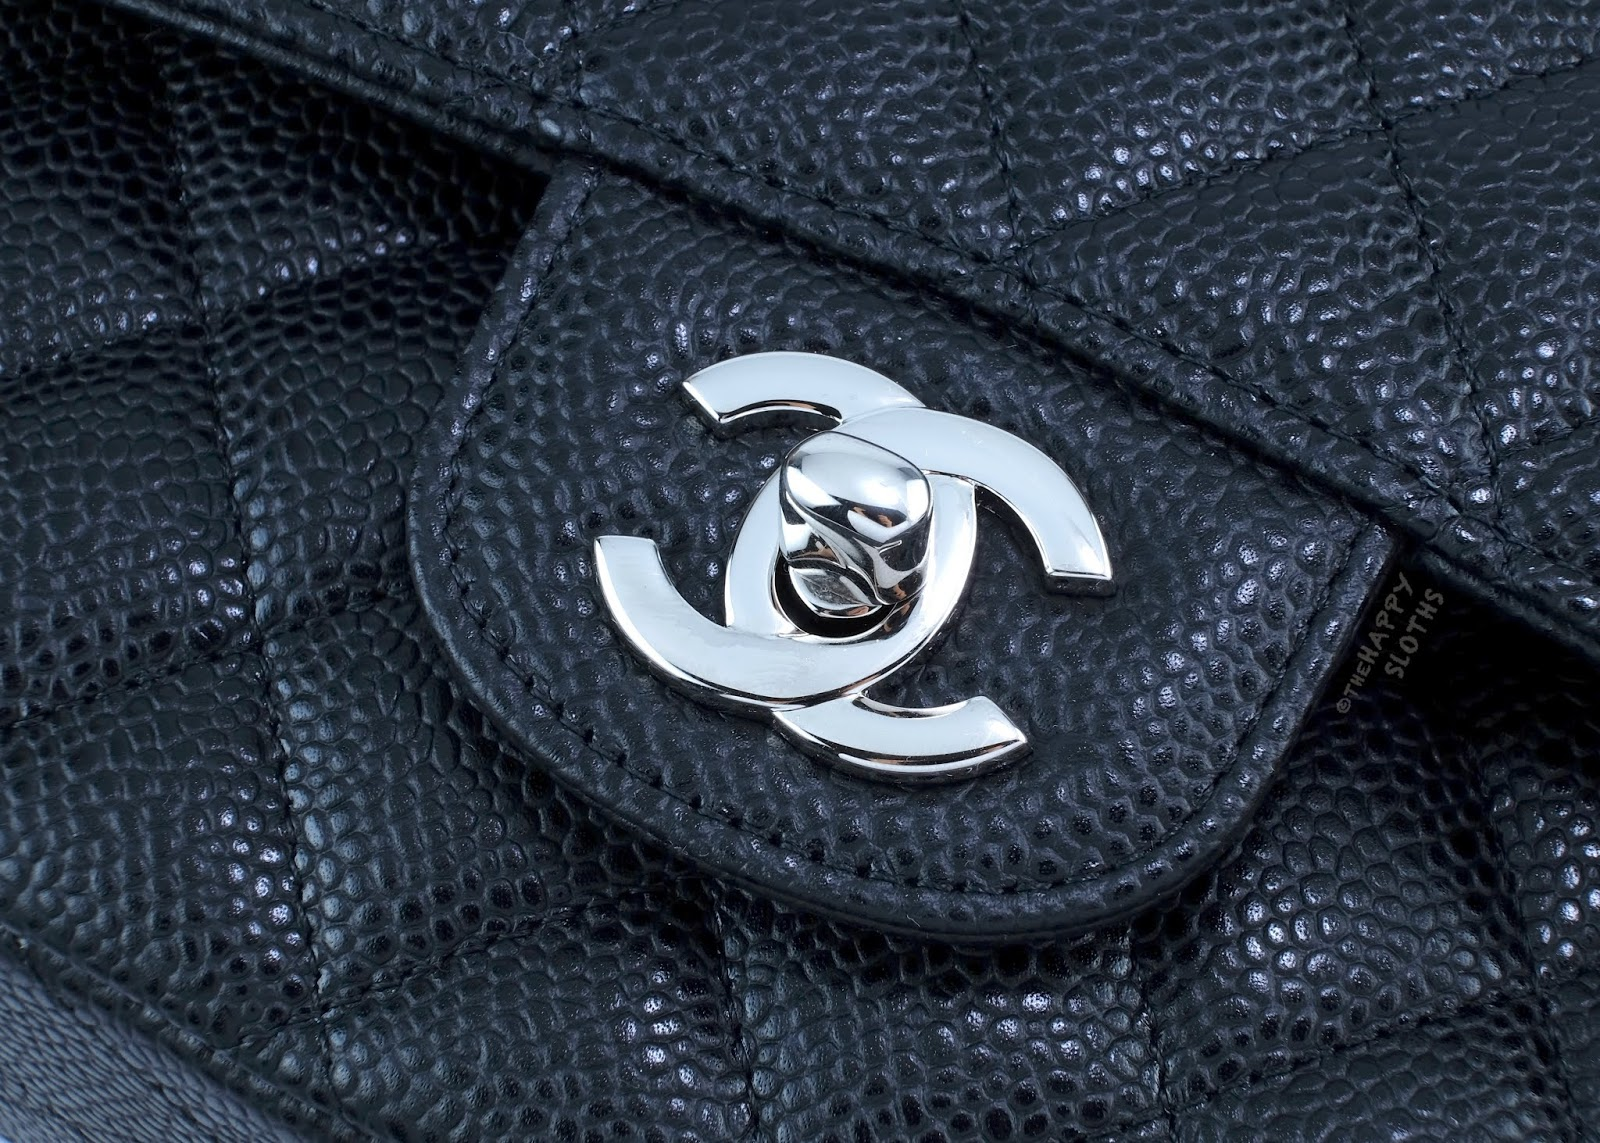 Chanel | Medium Classic Flap Handbag in Black Caviar Leather with Silver Hardware | CC Clasp: Review